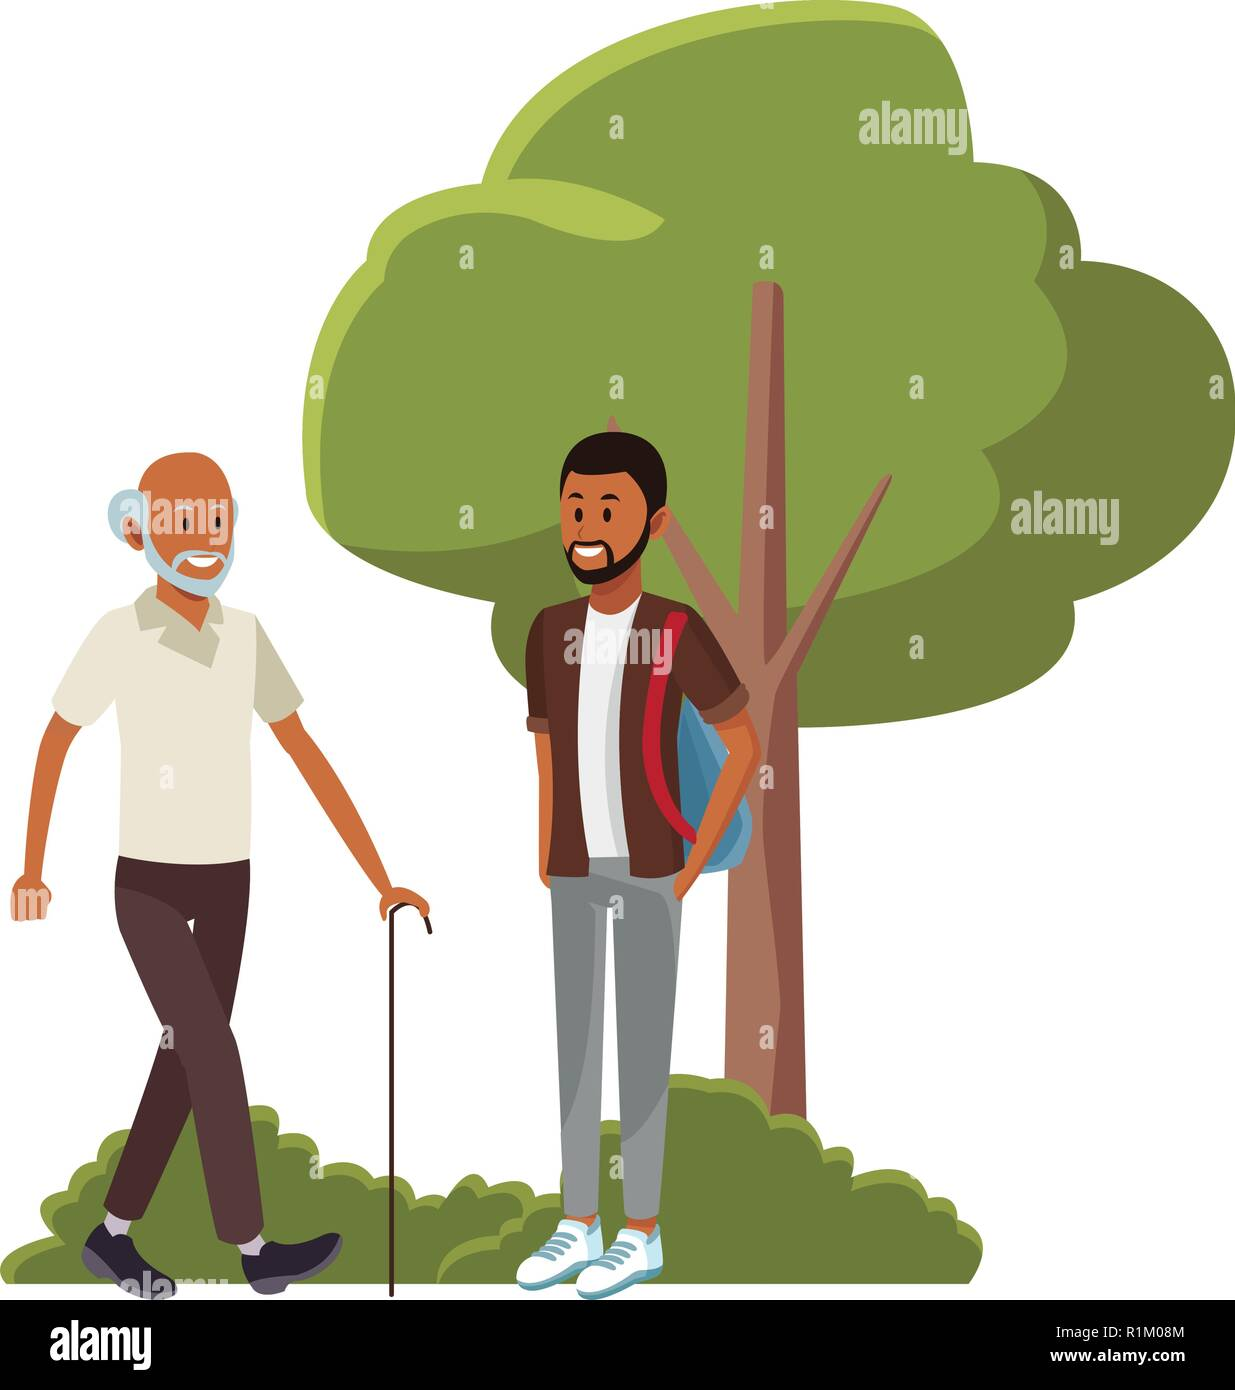 Friends Young Man And Old Man In Front Bush And Tree Cartoon Vector Illustration Graphic Design Stock Vector Image Art Alamy Sticky suit leaf collection system. https www alamy com friends young man and old man in front bush and tree cartoon vector illustration graphic design image224788724 html